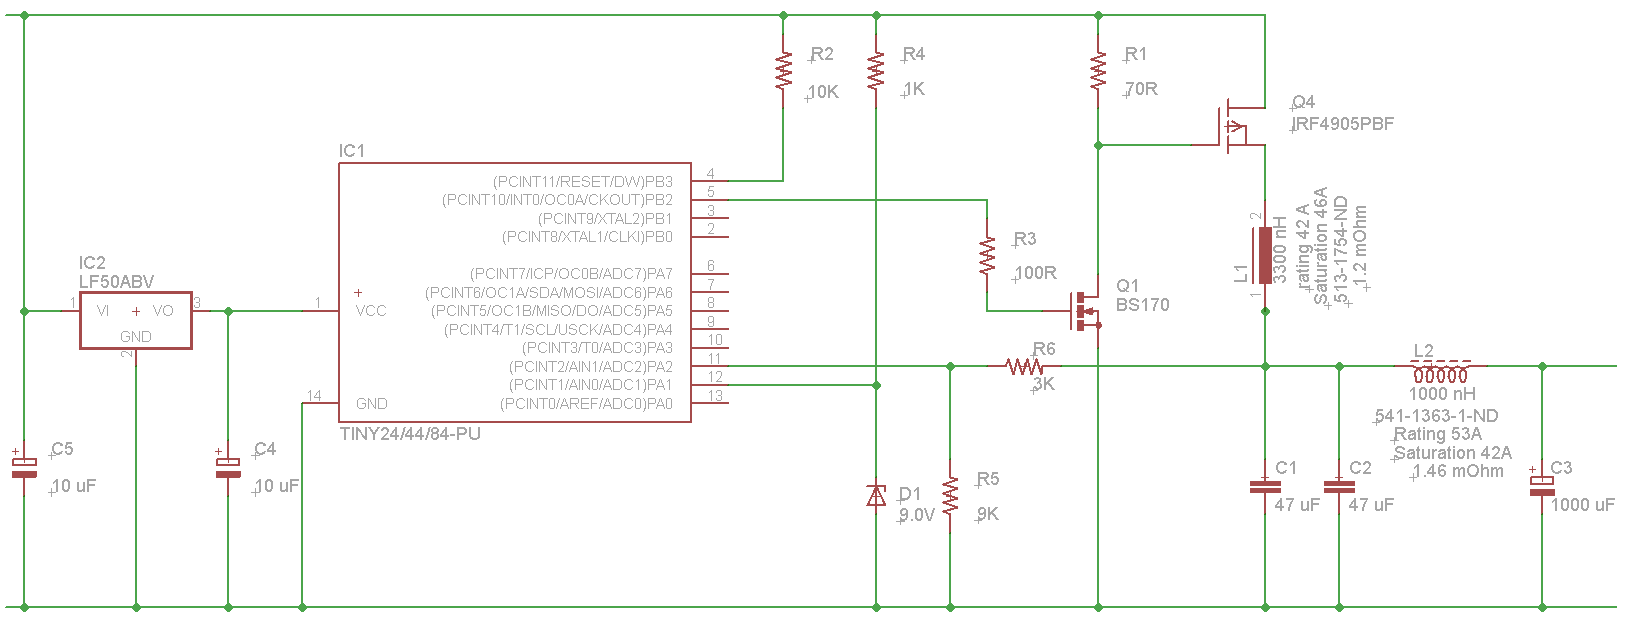 Top Circuits Page 108 Lm386 As Speaker Tester Circuit Diagram Automotivecircuit Schematics Buck Switching Regulator Based On Attiny84a Please Critique